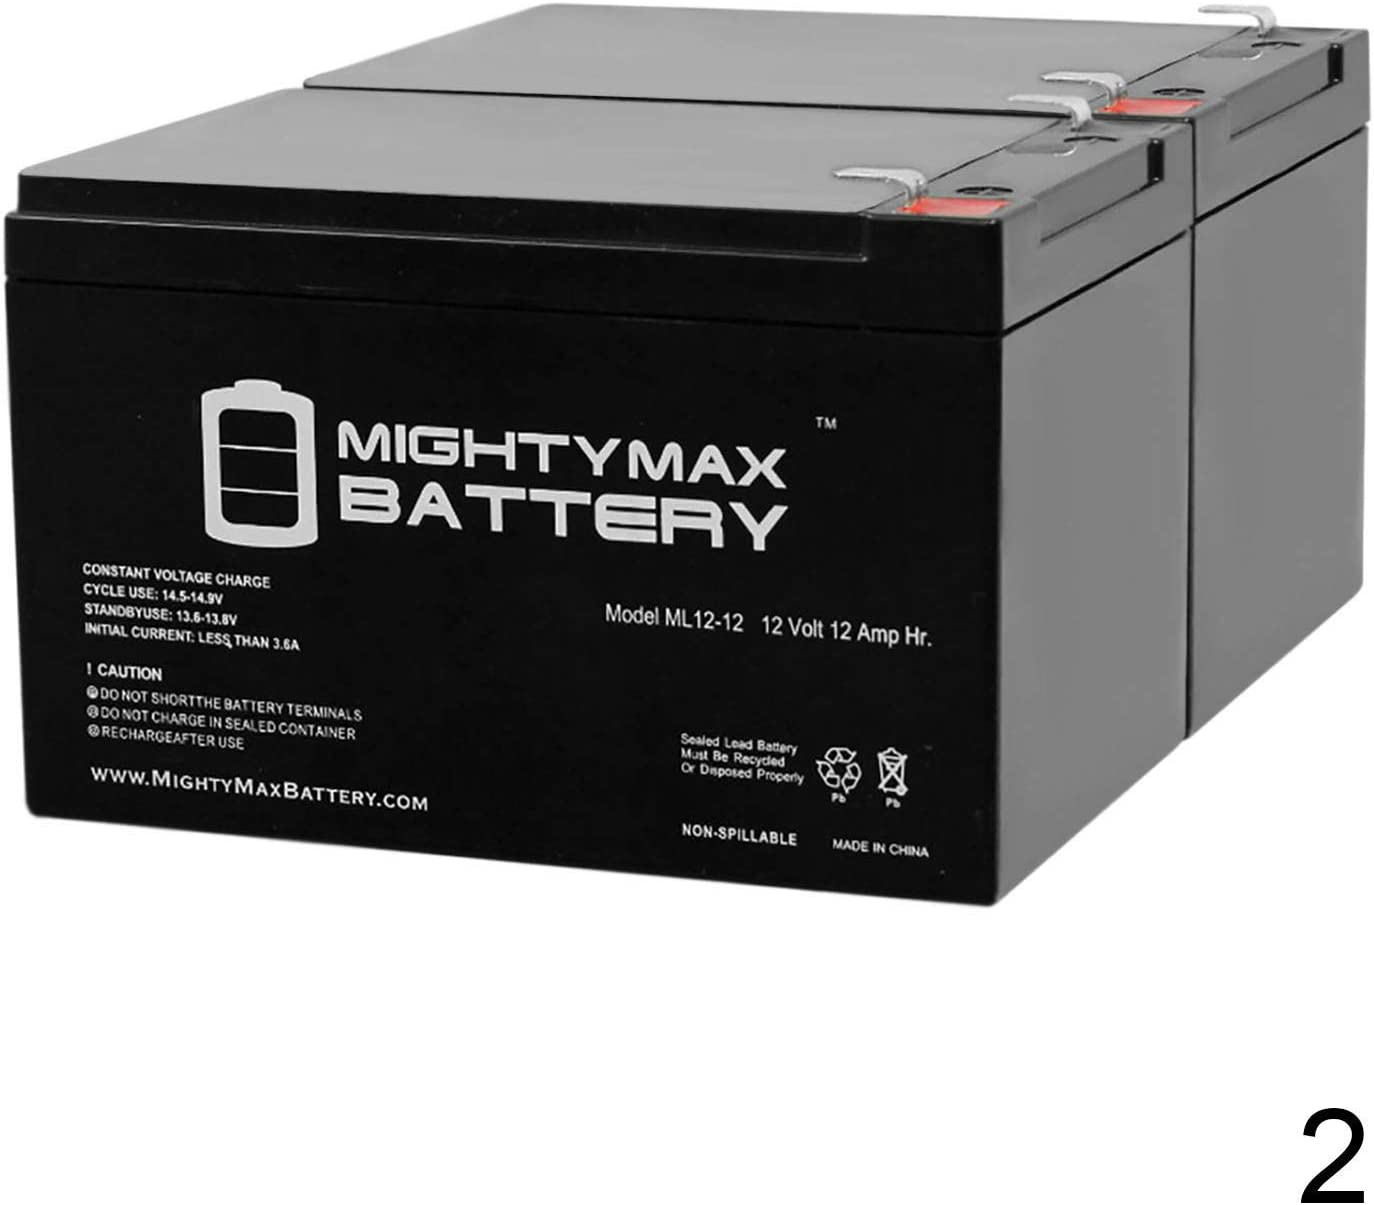 Amazon Com Mighty Max Battery 12v 12ah Replacement Battery For Gs Portalac Pe12v12 2 Pack Brand Product Home Audio Theater